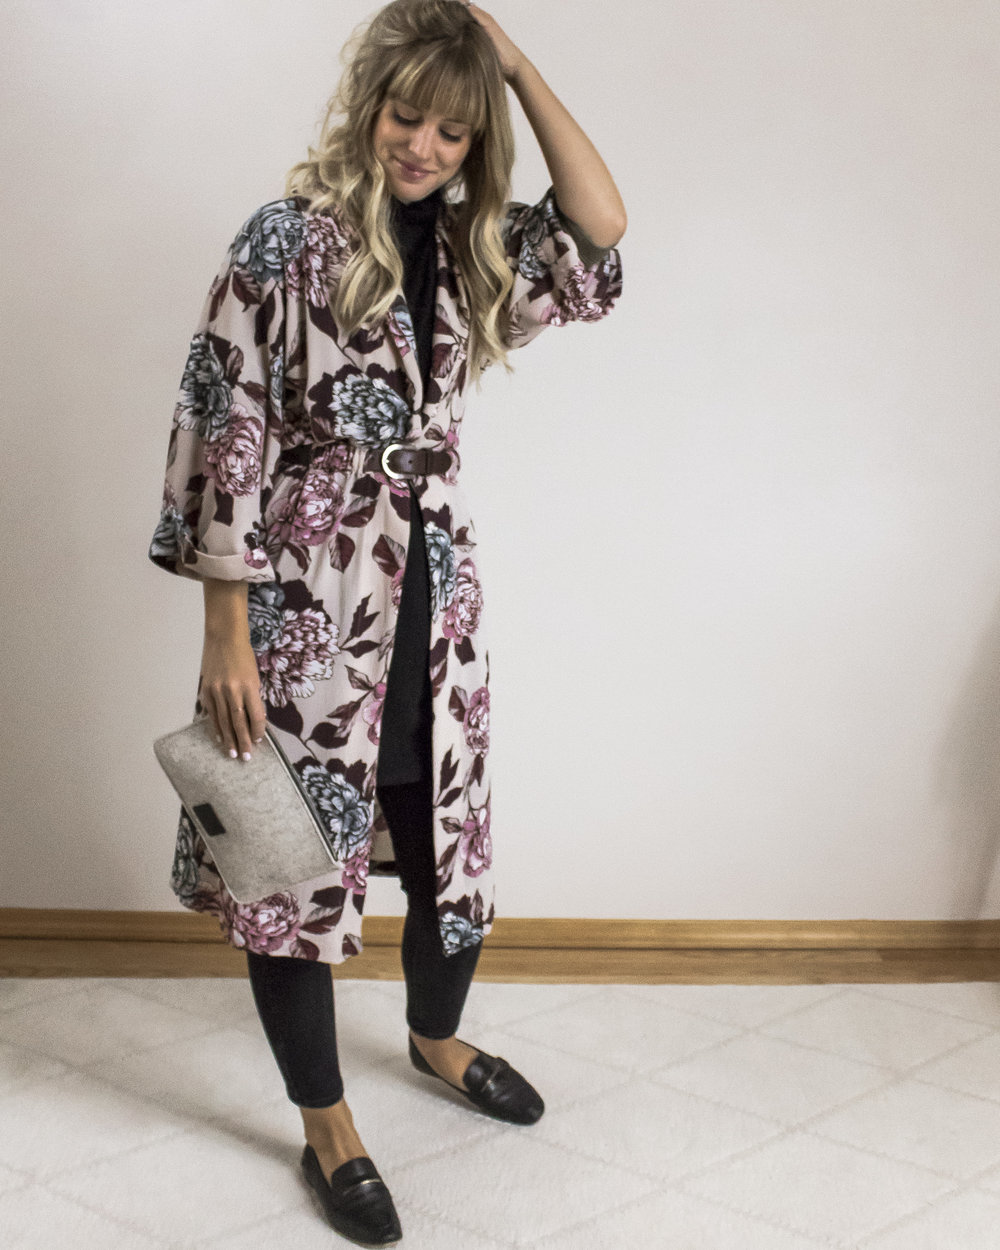 1. office chic - for a chic office vibe, layer it over a pair of black jeans or trousers. top the look with a flowy printed piece (like our FLORAL KIMONO) and belt it at your true waist for a defined shape. shoe and bag options are endless here, so we kept it simple with a classic loafer style and our sleek FELT FLAT POUCH by graf lantz.